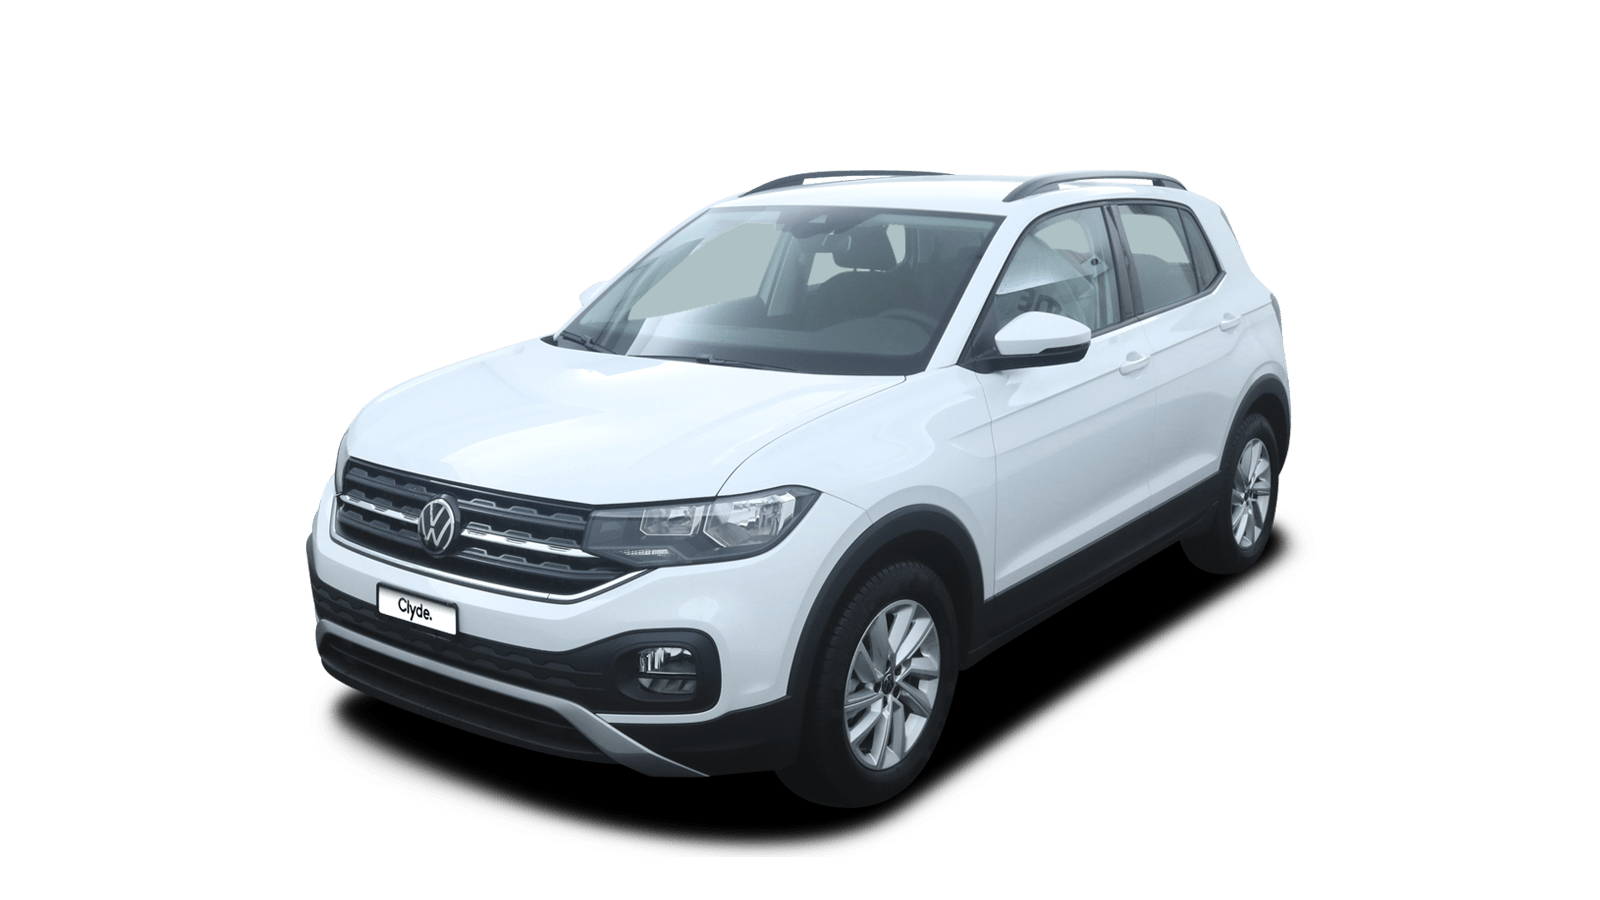 VW T-Cross White front - Clyde car subscription